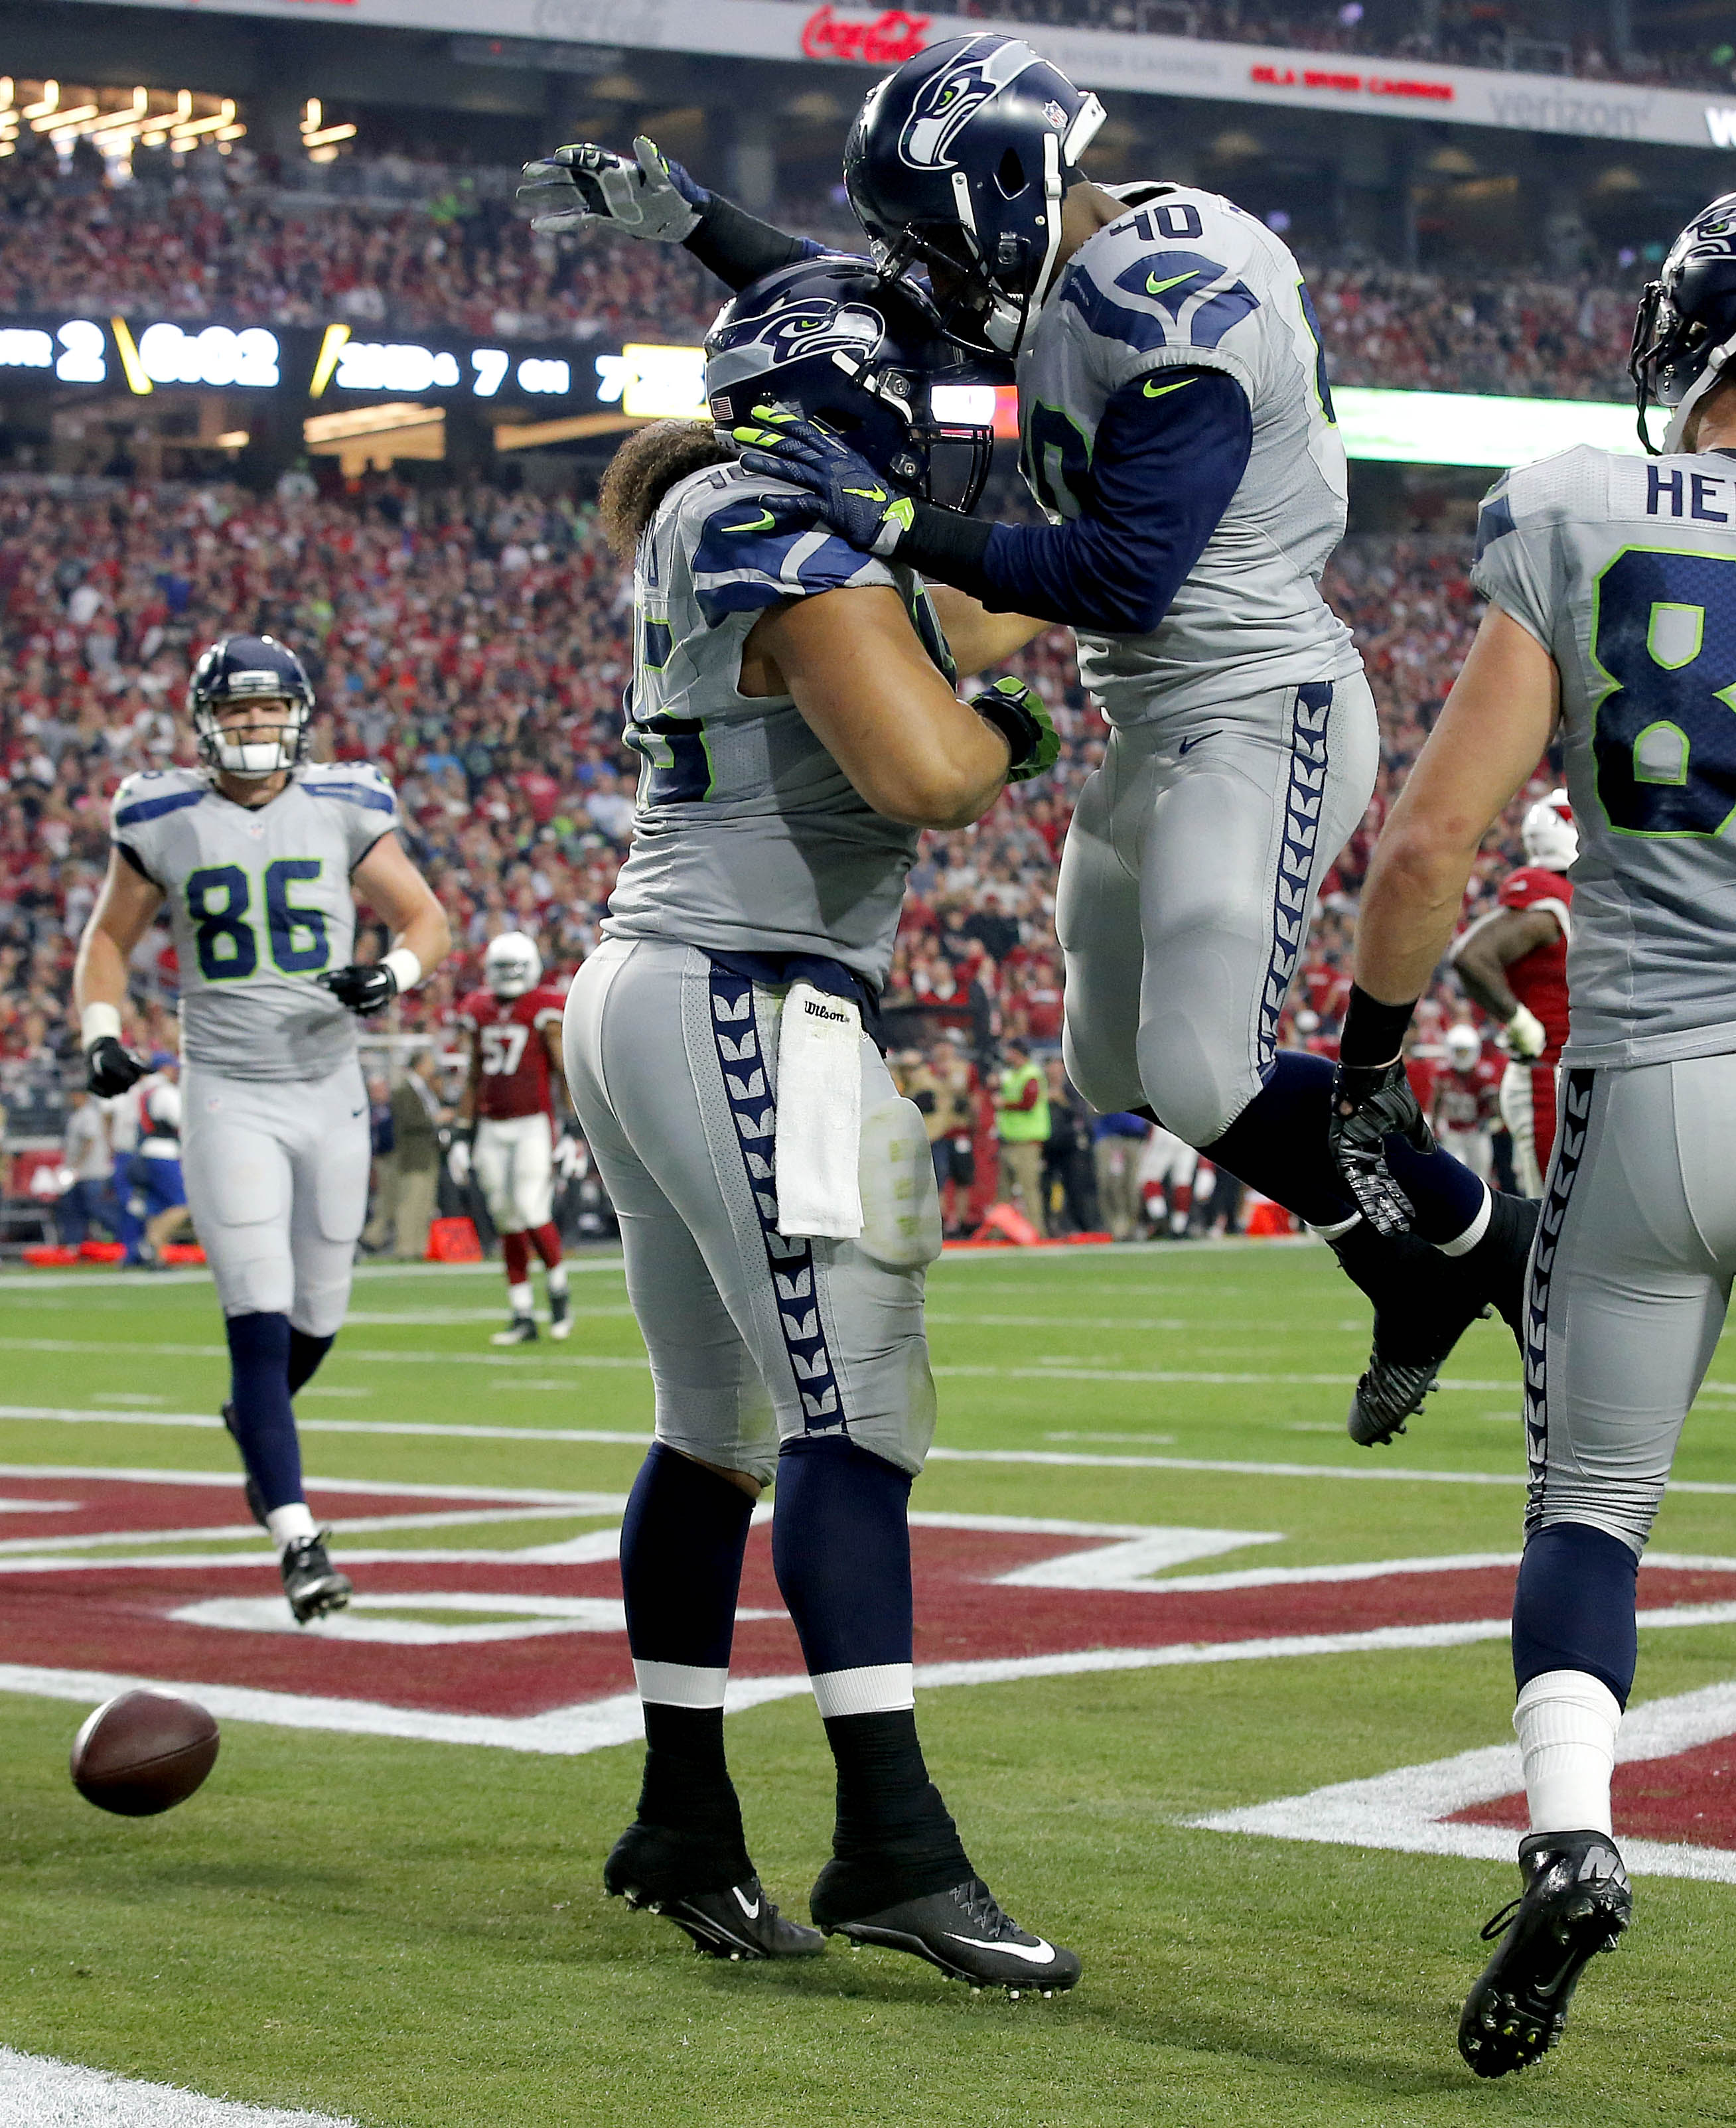 Seattle Seahawks fullback Will Tukuafu (46) celebrates with teammate Derrick Coleman (40) after scoring a touchdown against the Arizona Cardinals during the first half of an NFL football game, Sunday, Jan. 3, 2016, in Glendale, Ariz. (AP Photo/Ross D. Fra